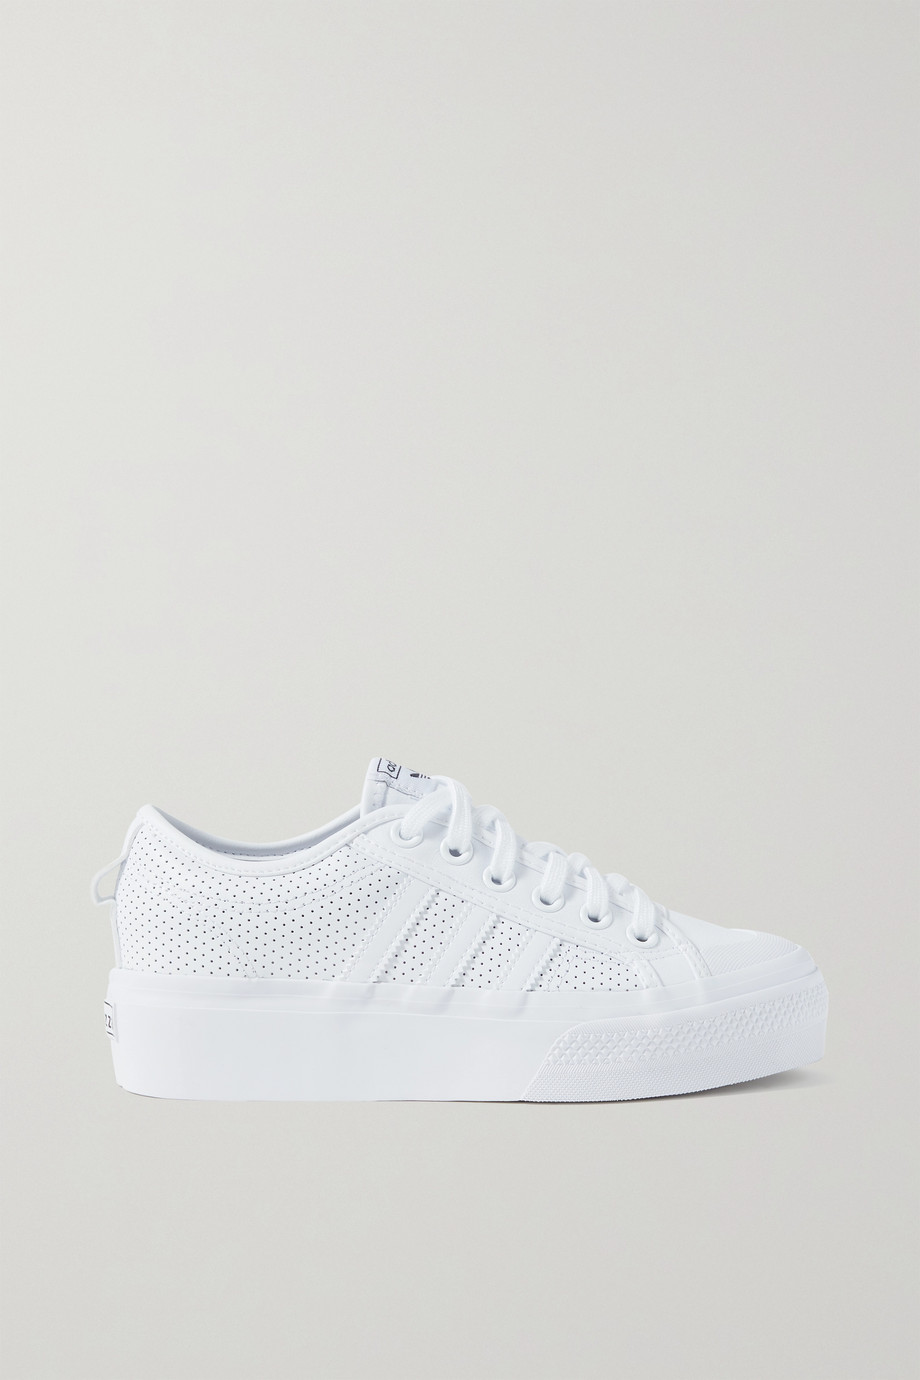 ADIDAS ORIGINALS Nizza perforated leather sneakers